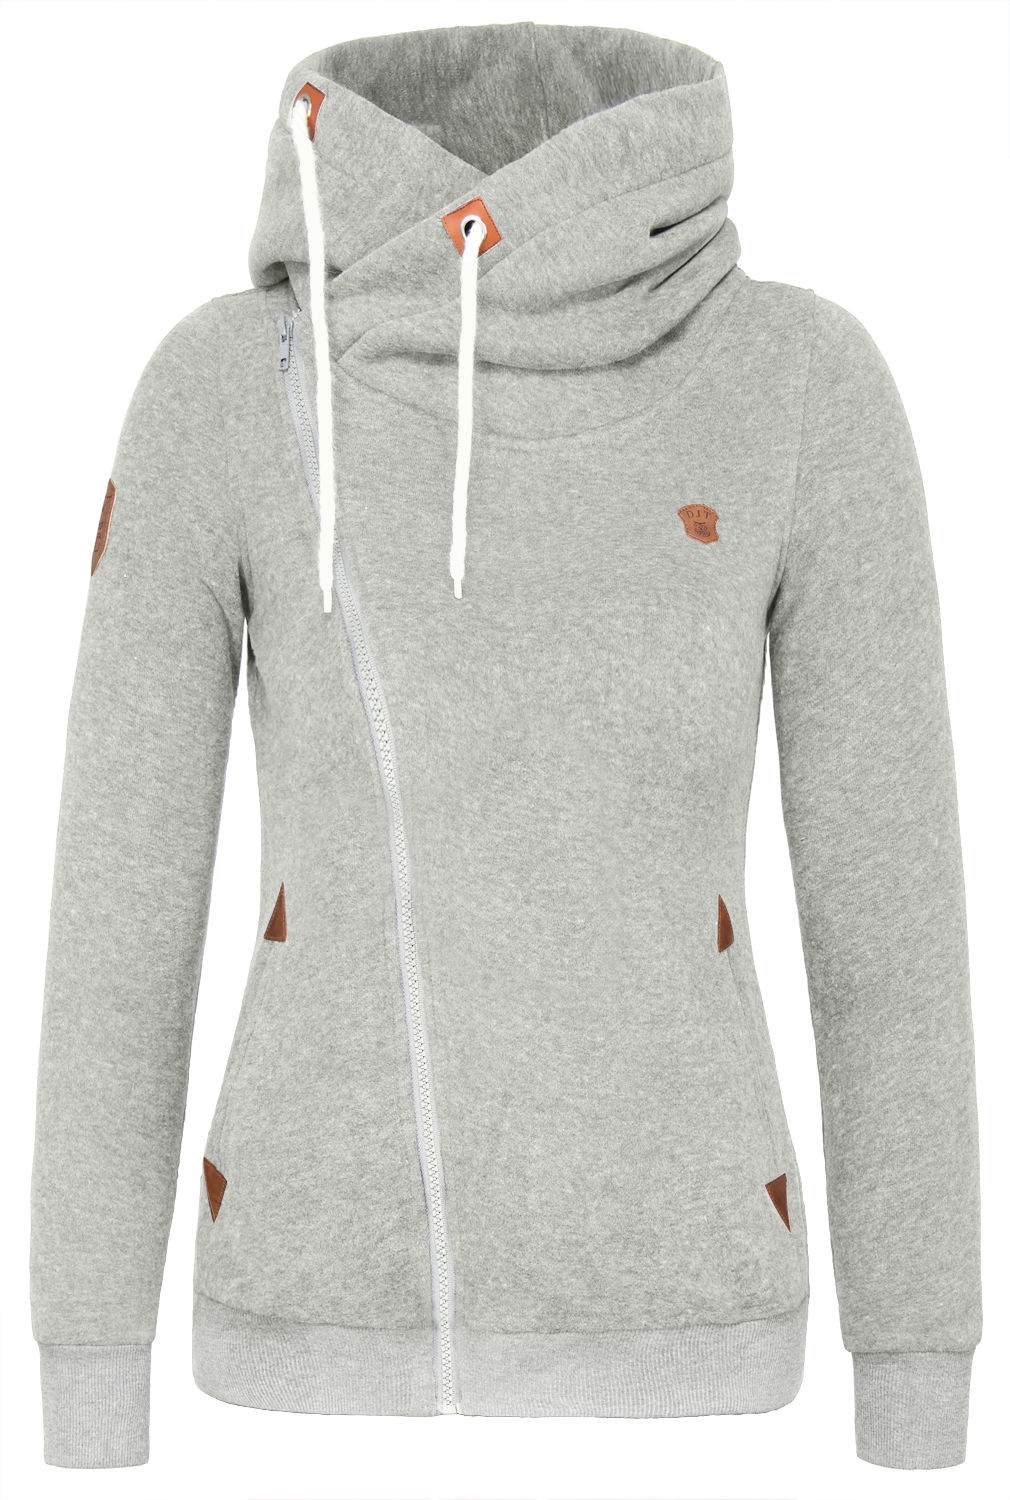 High Collar Hoodie Womens - Hardon Clothes